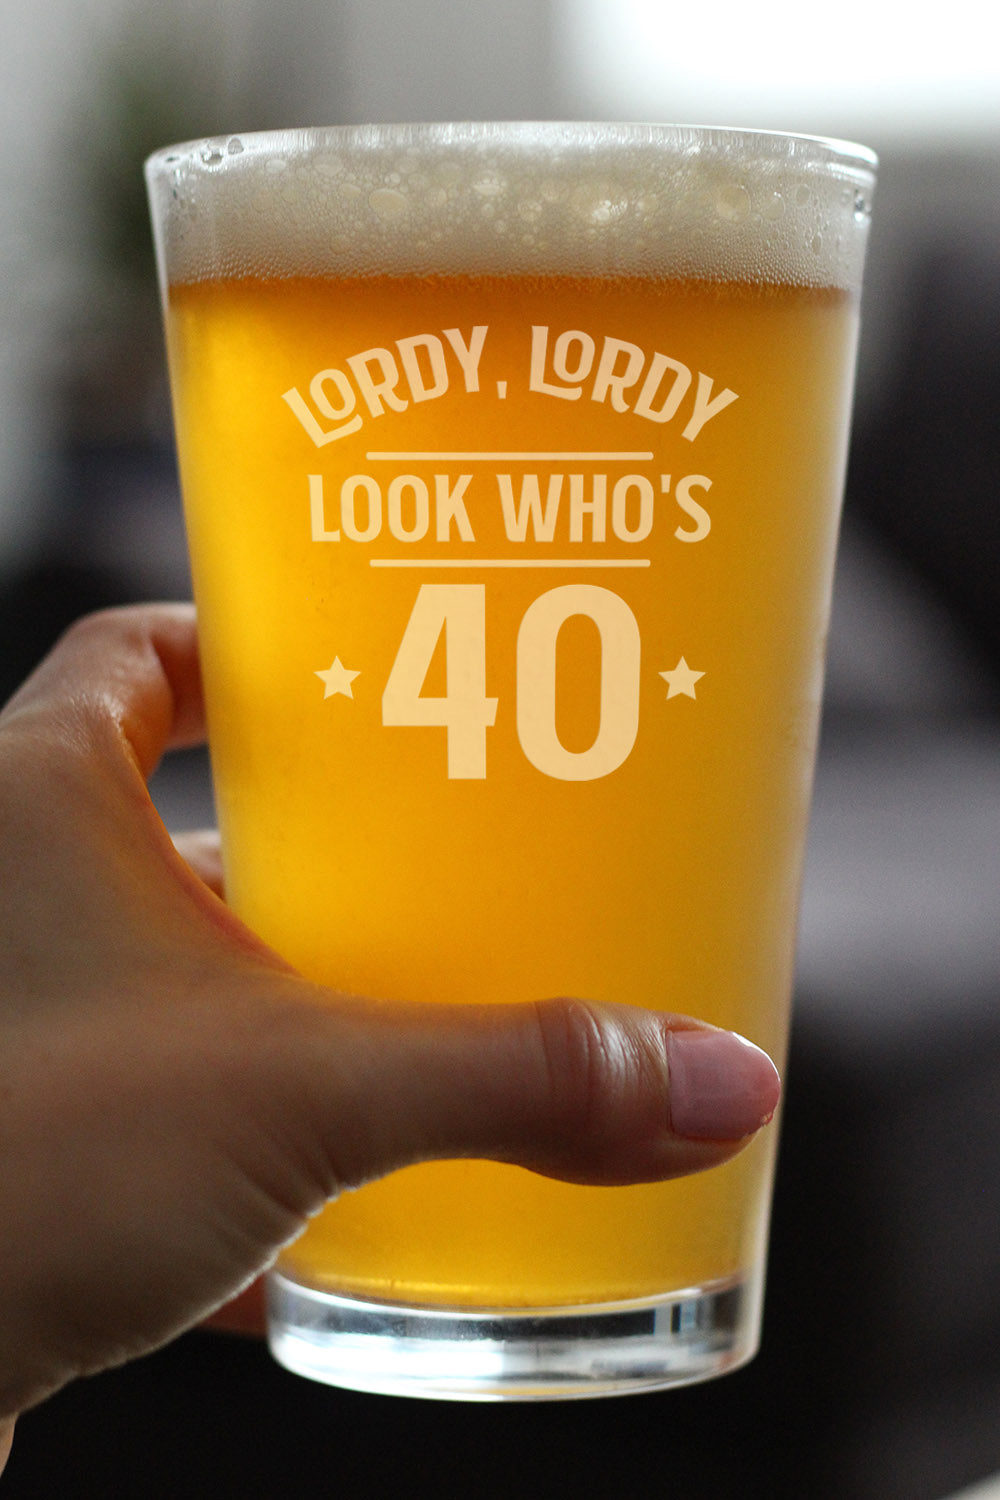 Lordy, Lordy Look Who's 40 - 16 Ounce Pint Glass